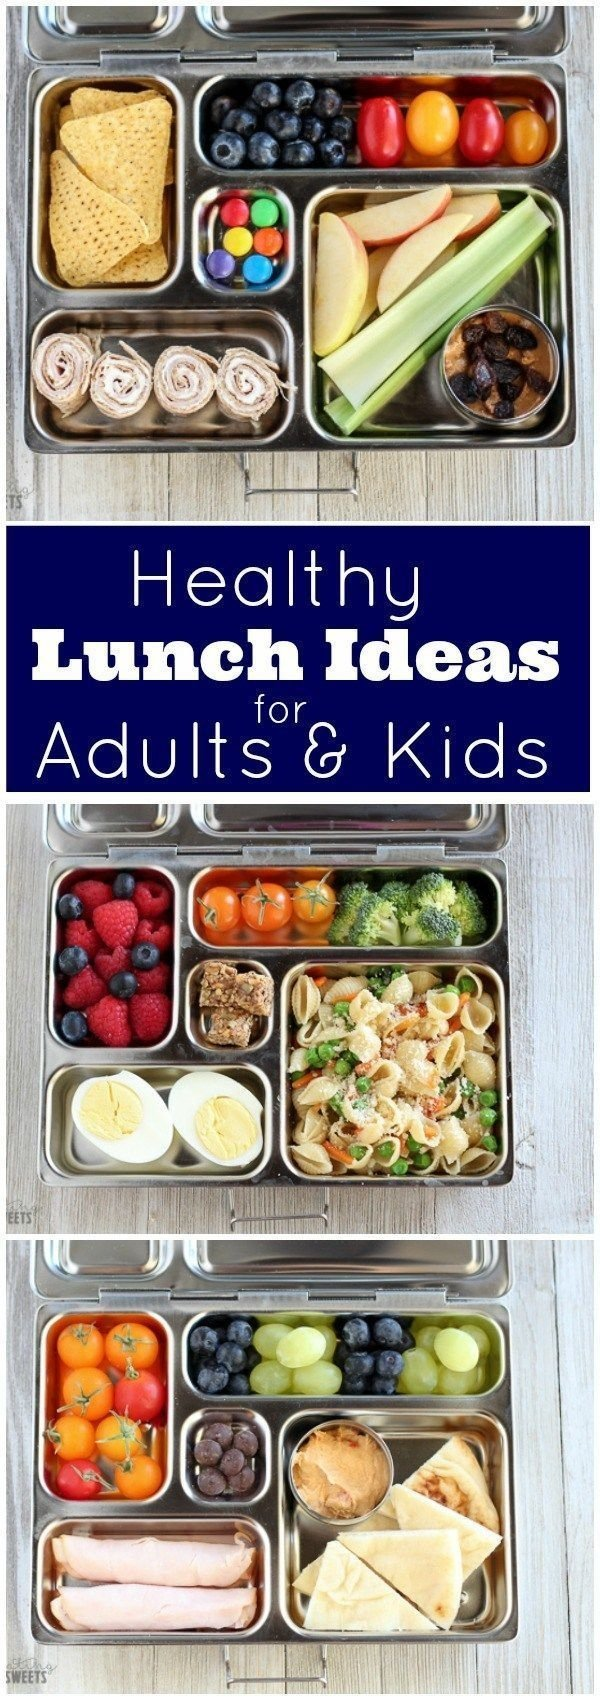 10 Beautiful Healthy Brown Bag Lunch Ideas 378 best lunch recipes images on pinterest sandwiches savory 2021